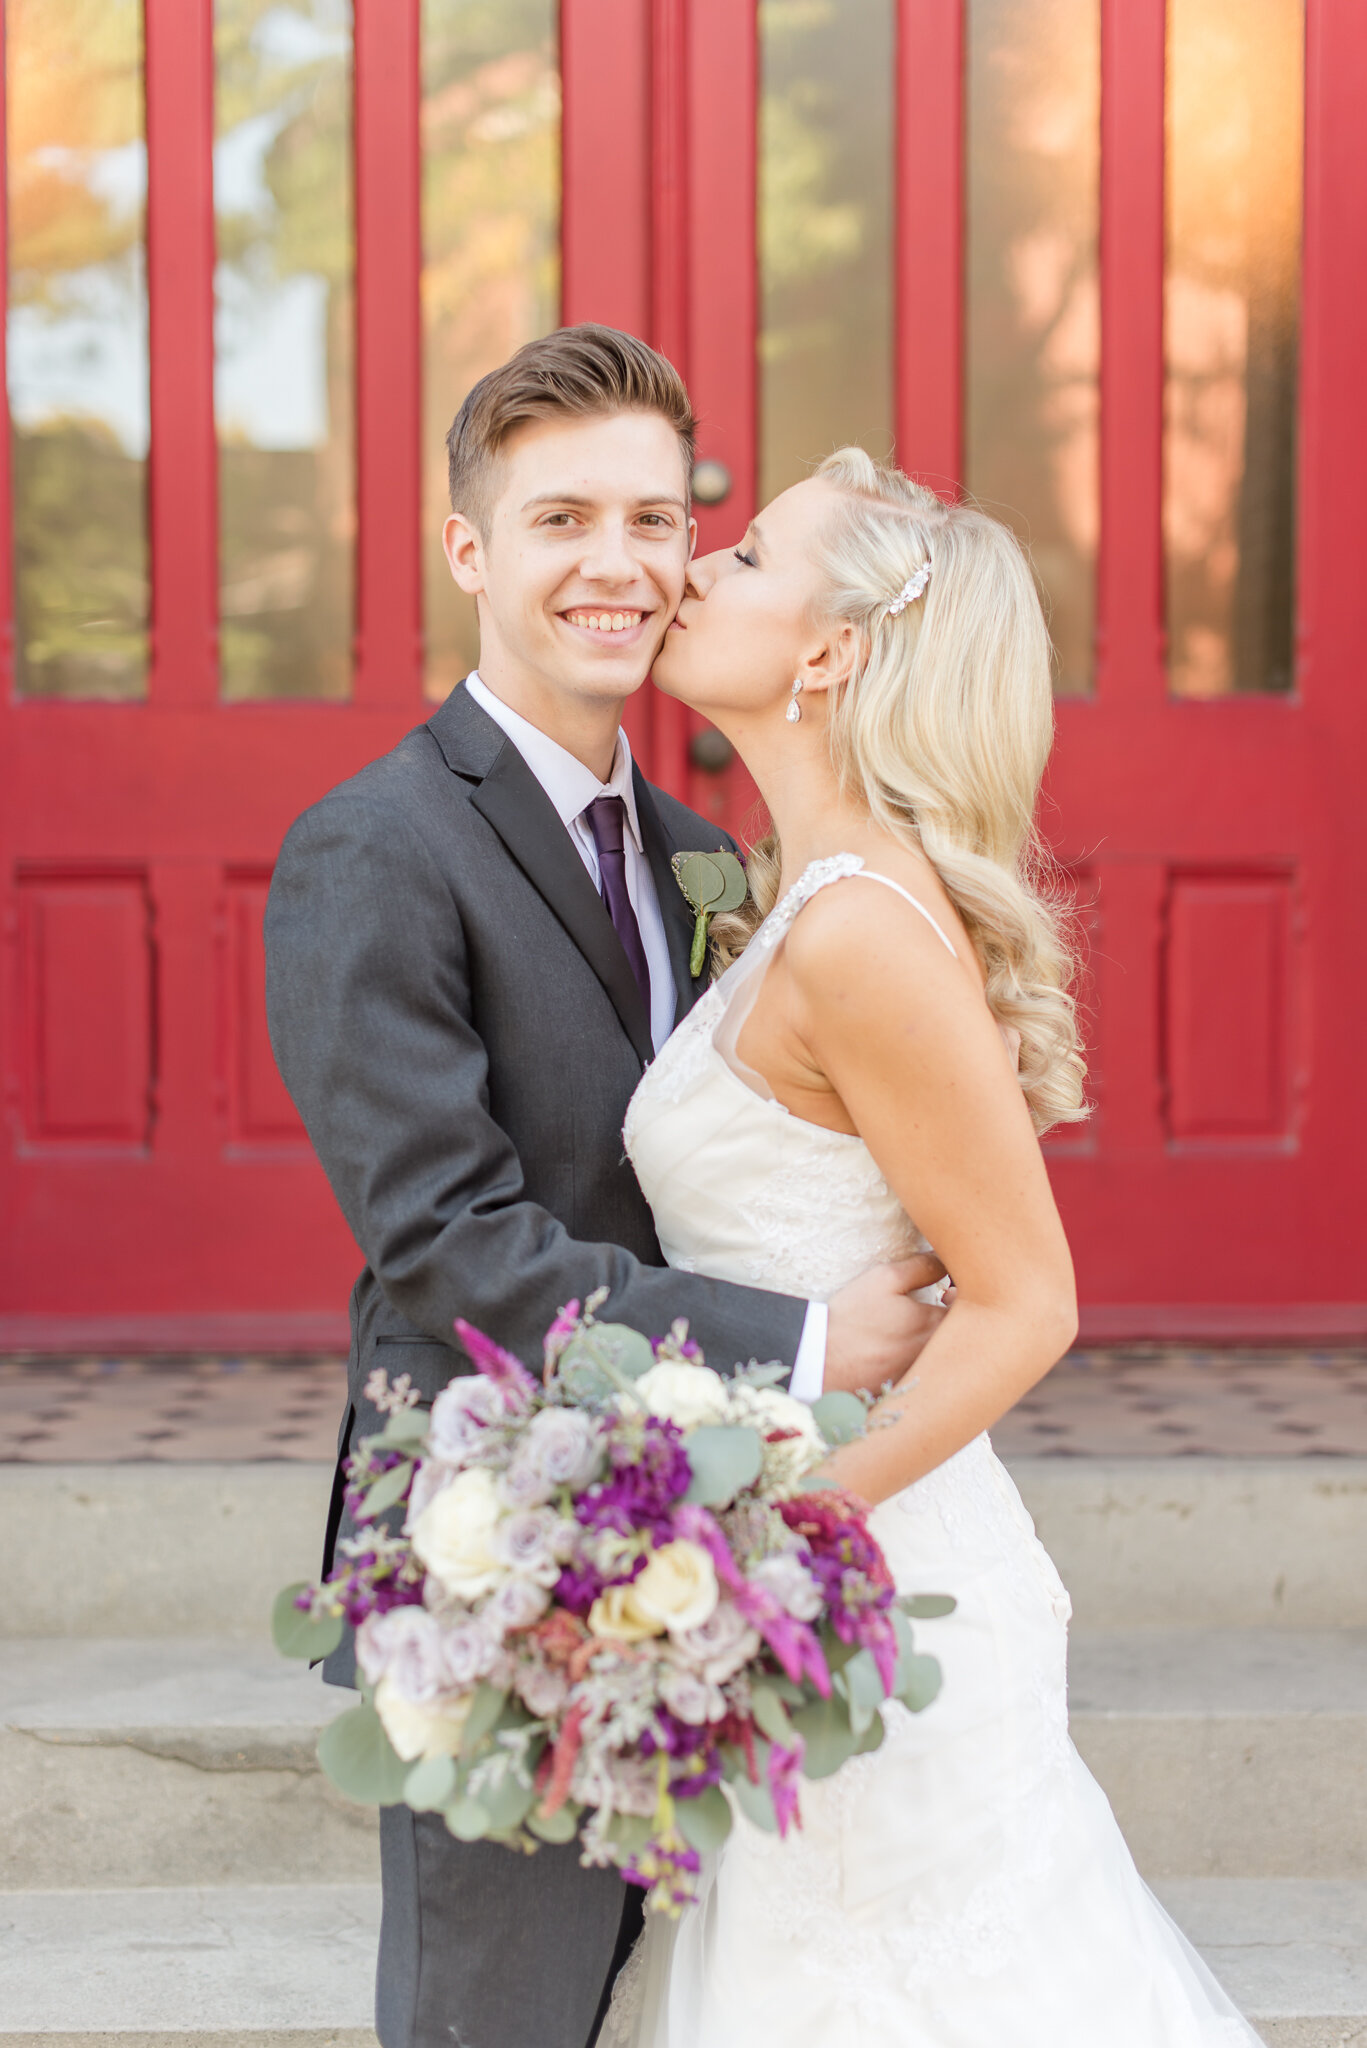 Downtown Indianapolis Wedding at Cyrus Place7528.jpg